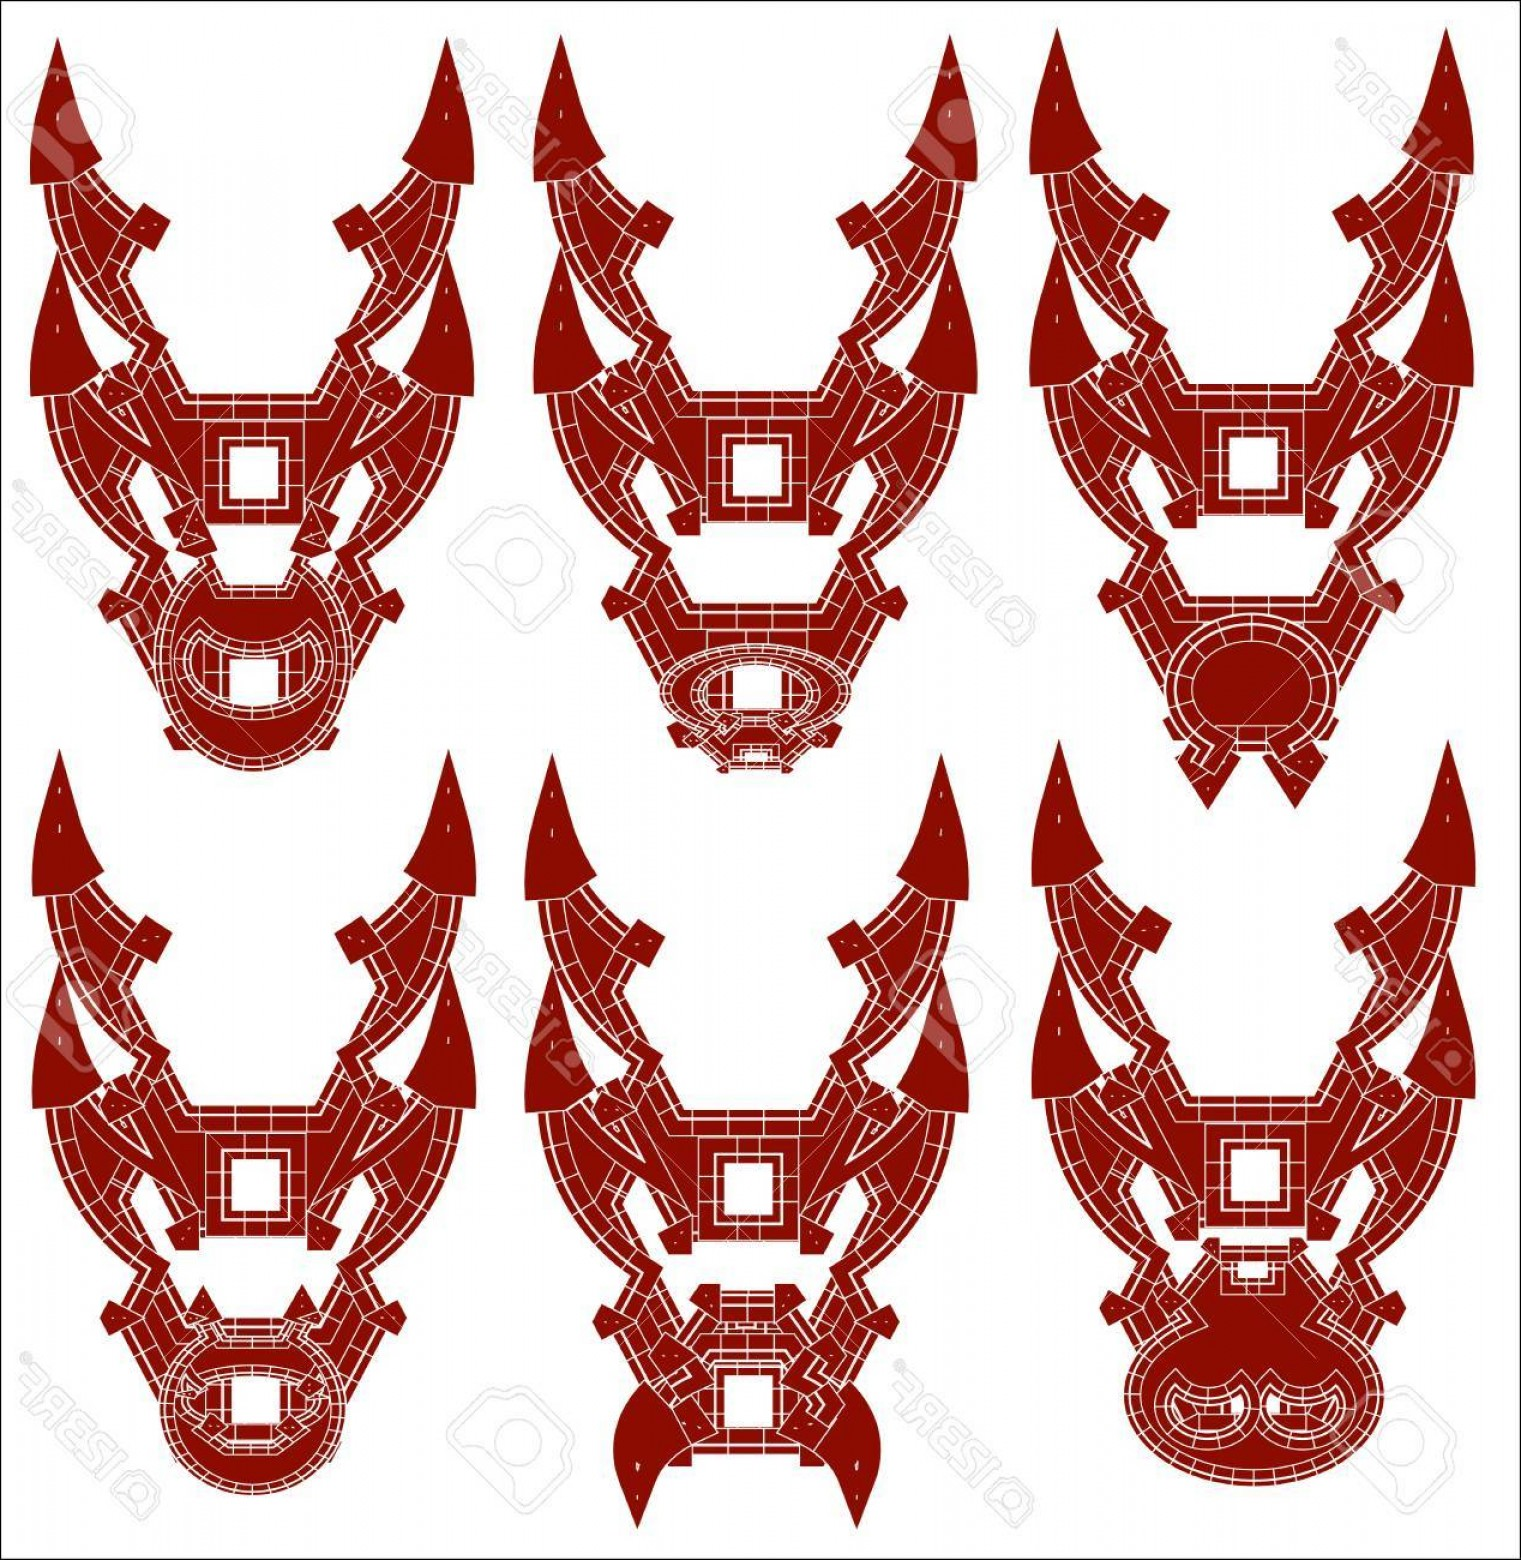 Red Samurai Vector: Photostock Vector Vector Illustration Of A Red Samurai Mask